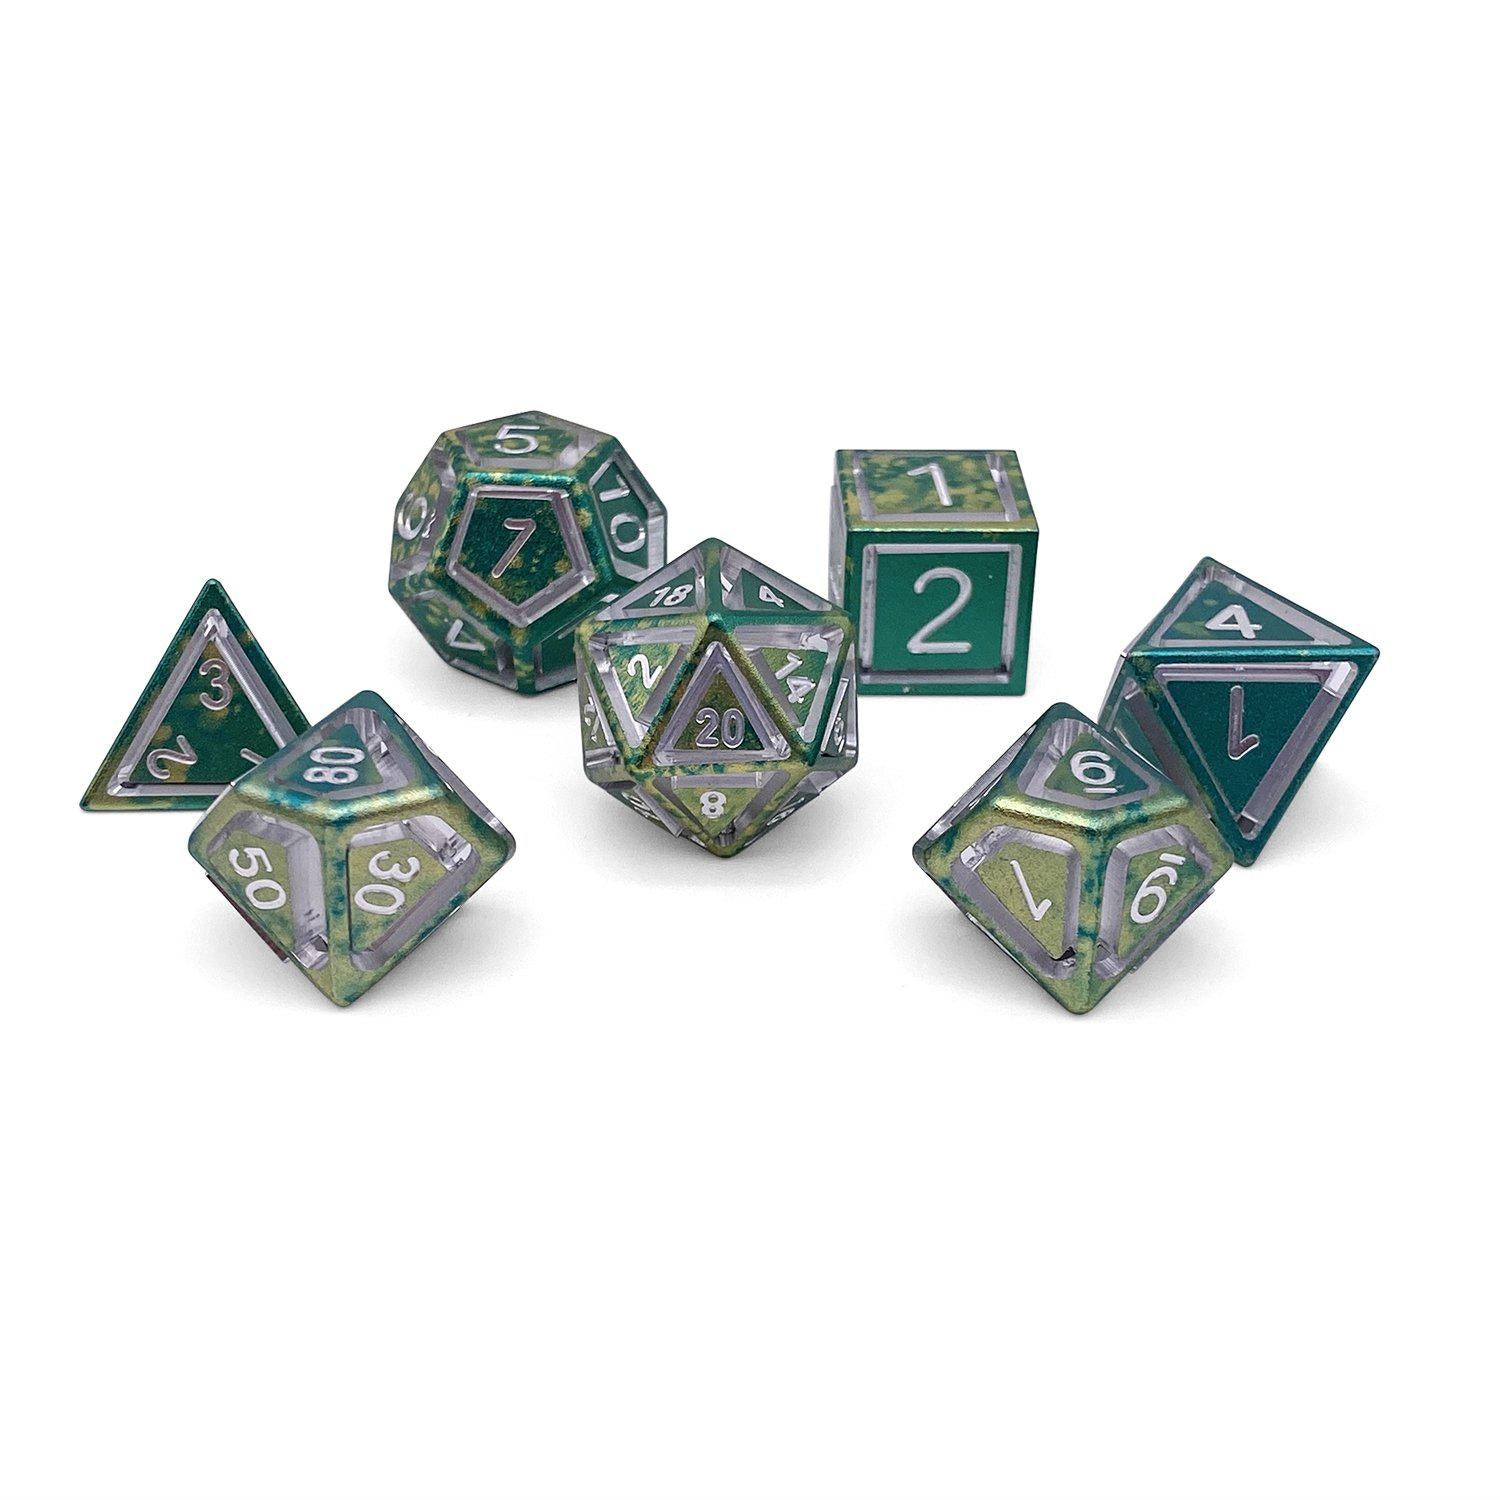 Nimbus Wondrous Precision CNC Aluminum Dice Set - Nautical Demise